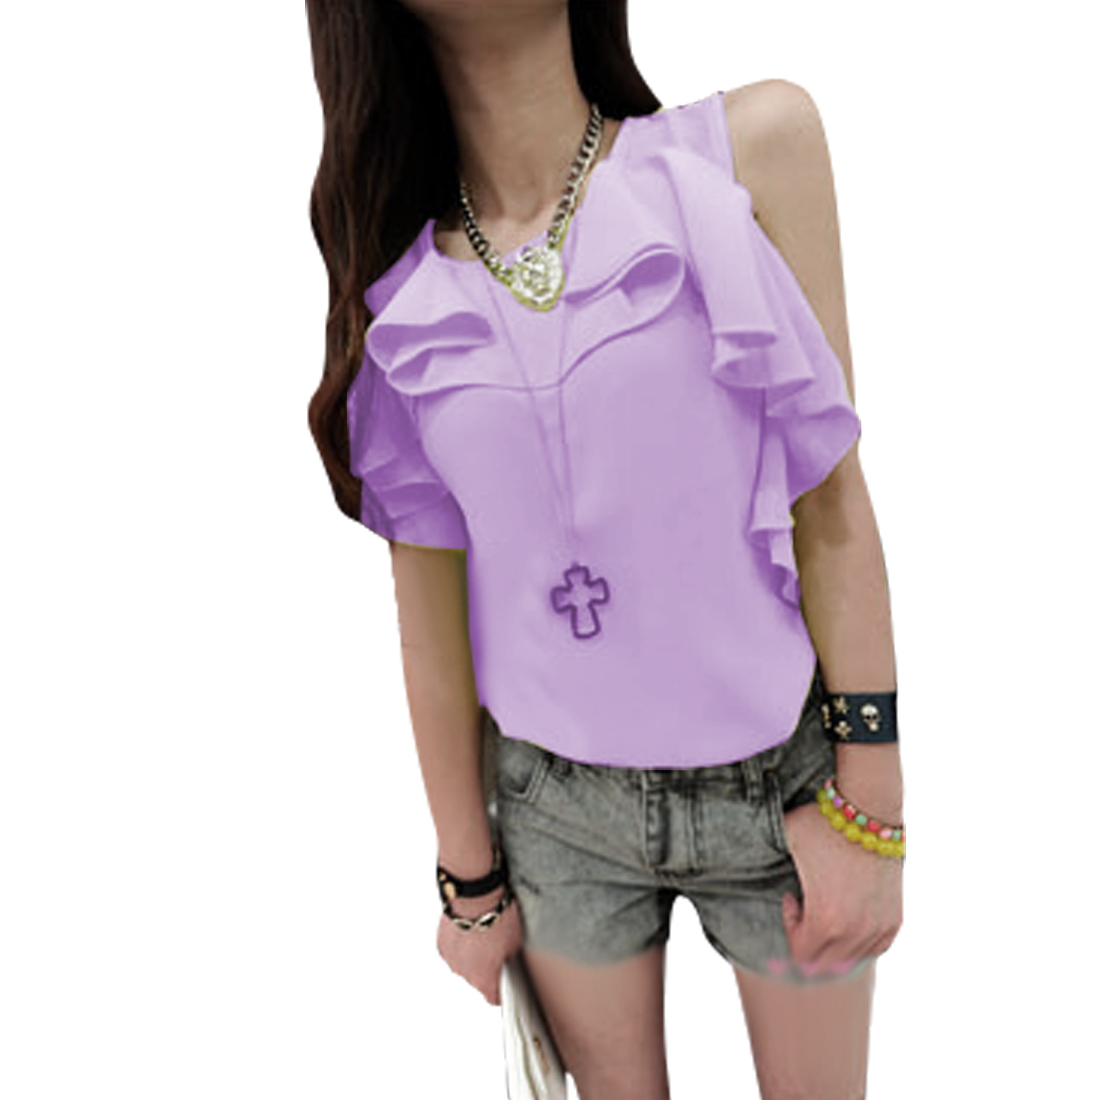 Ladies Zip Up Back Sleeveless Semi Sheer Casual Blouse Lilac XS